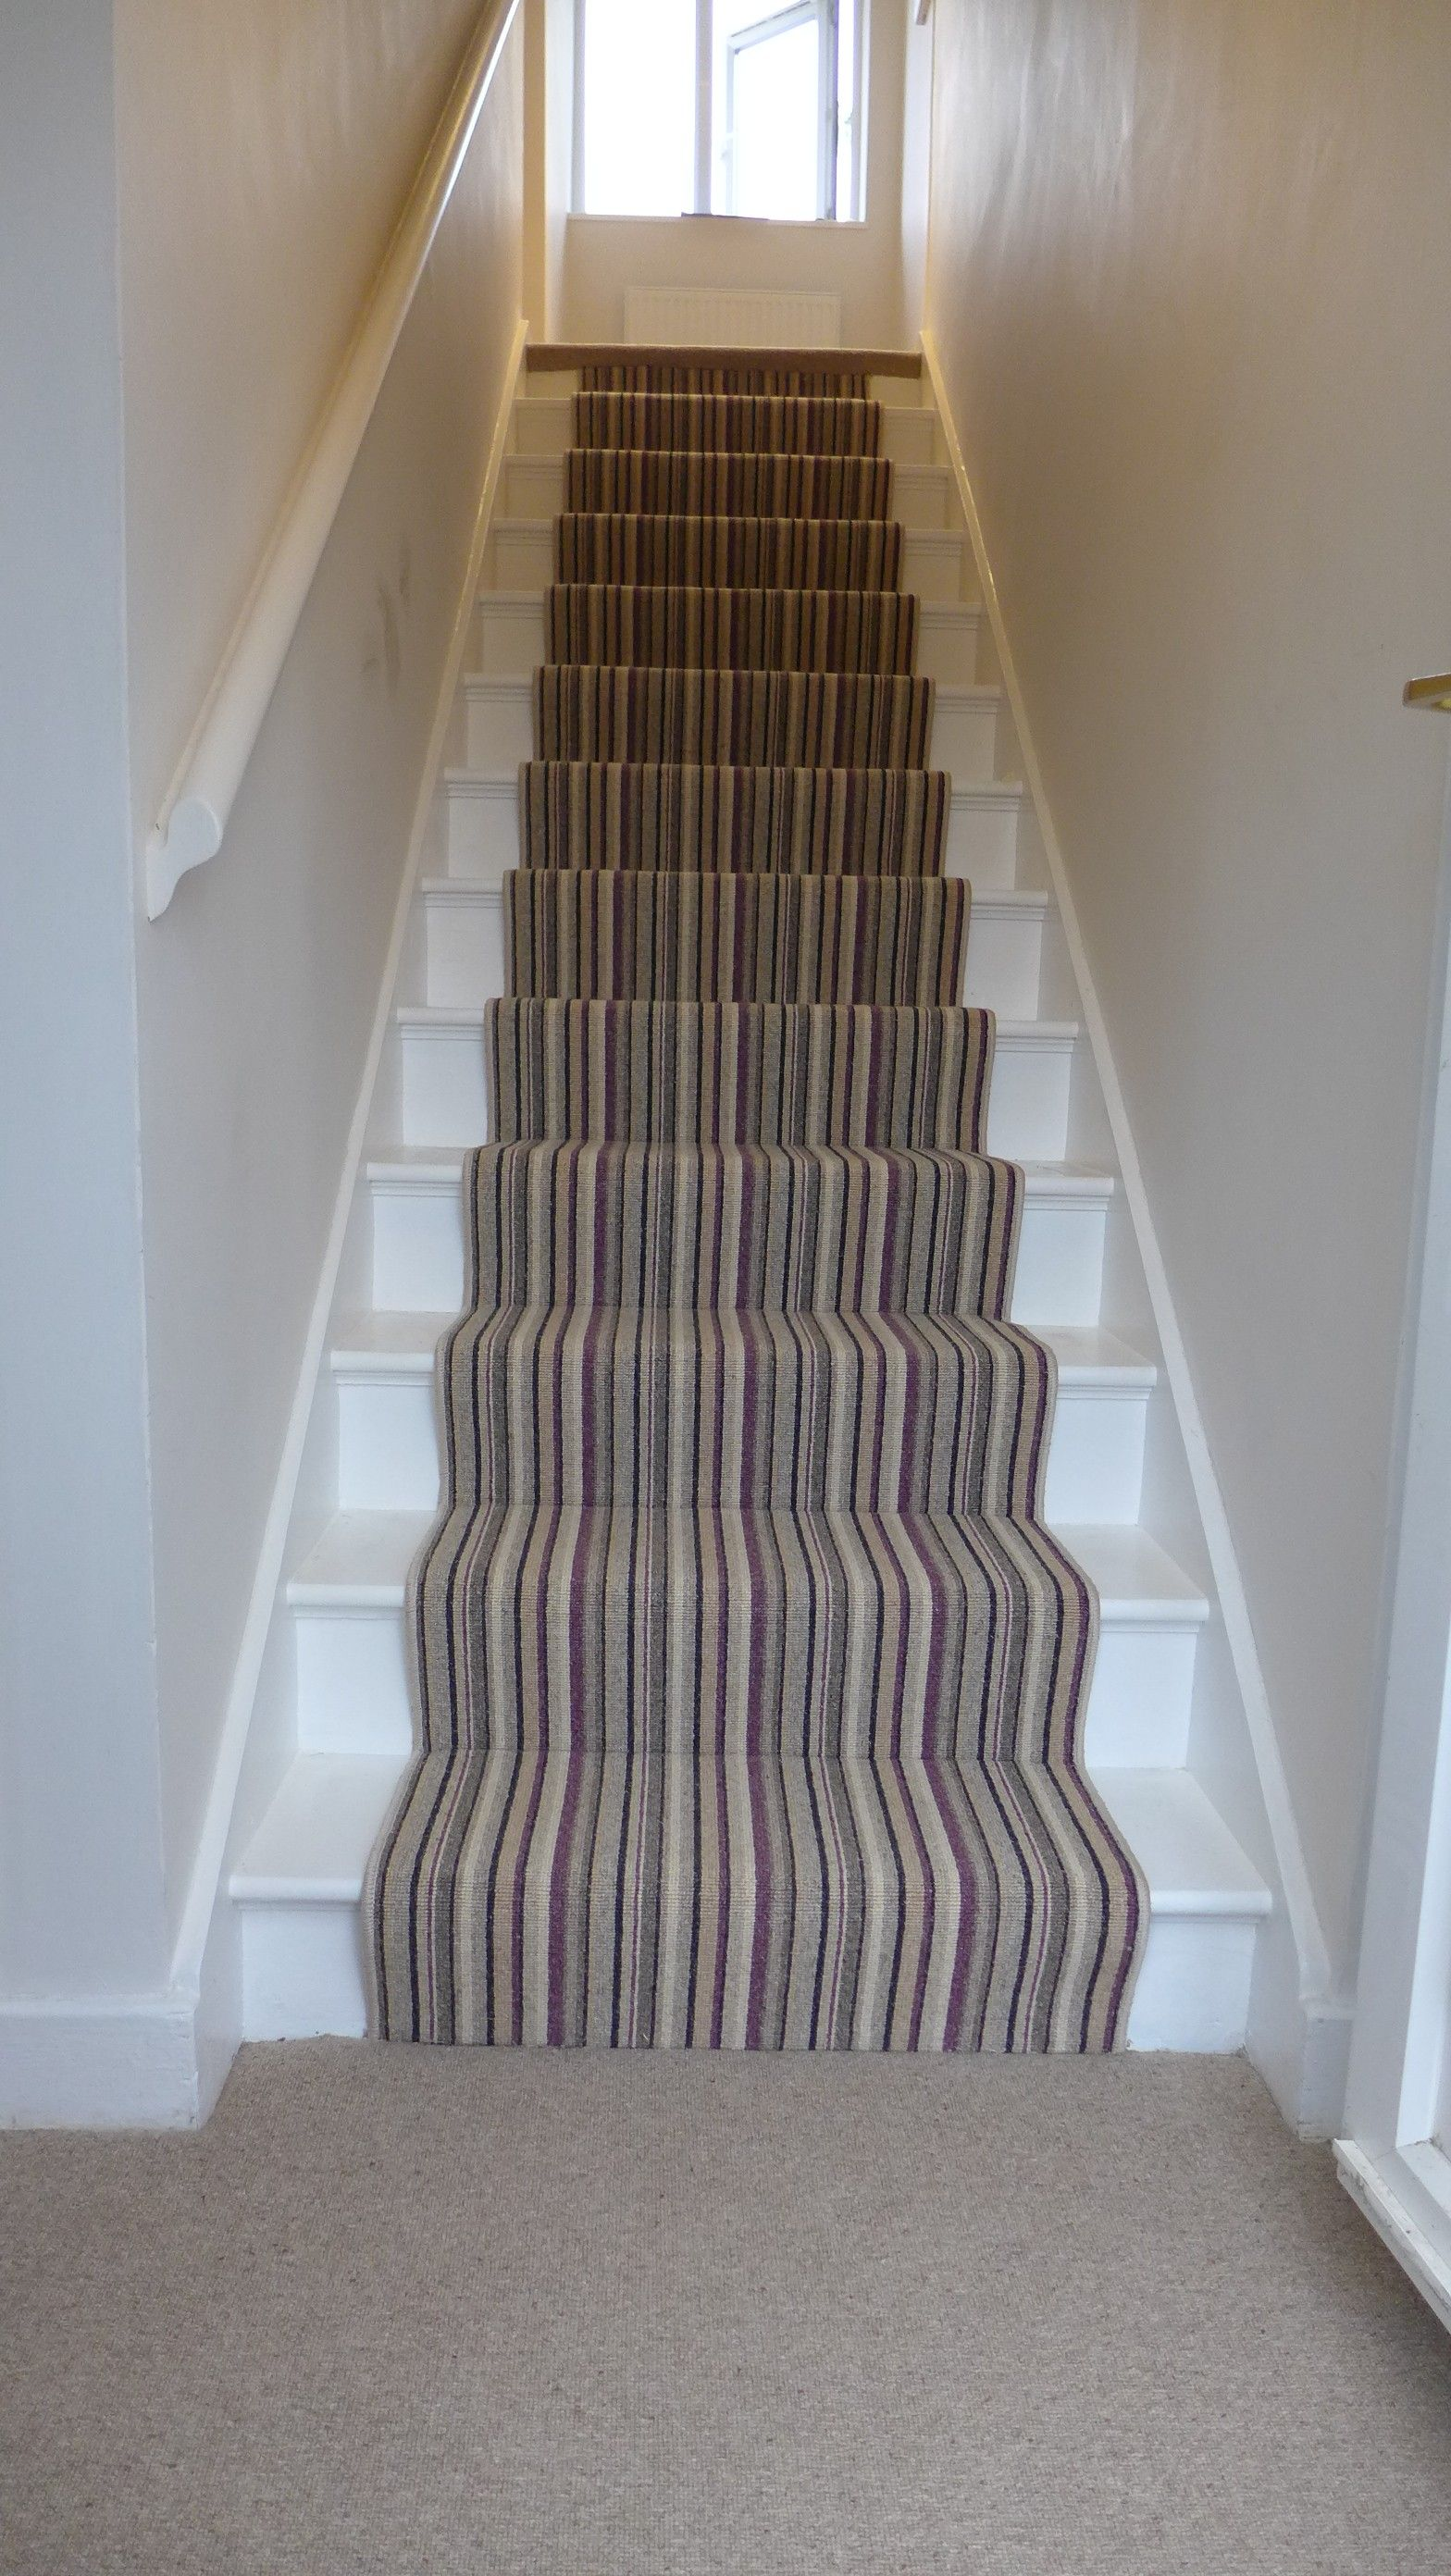 Hallway carpet runners sold by the foot  up striped stairs u  Carpet  Pinterest  Stairs Carpet stairs and